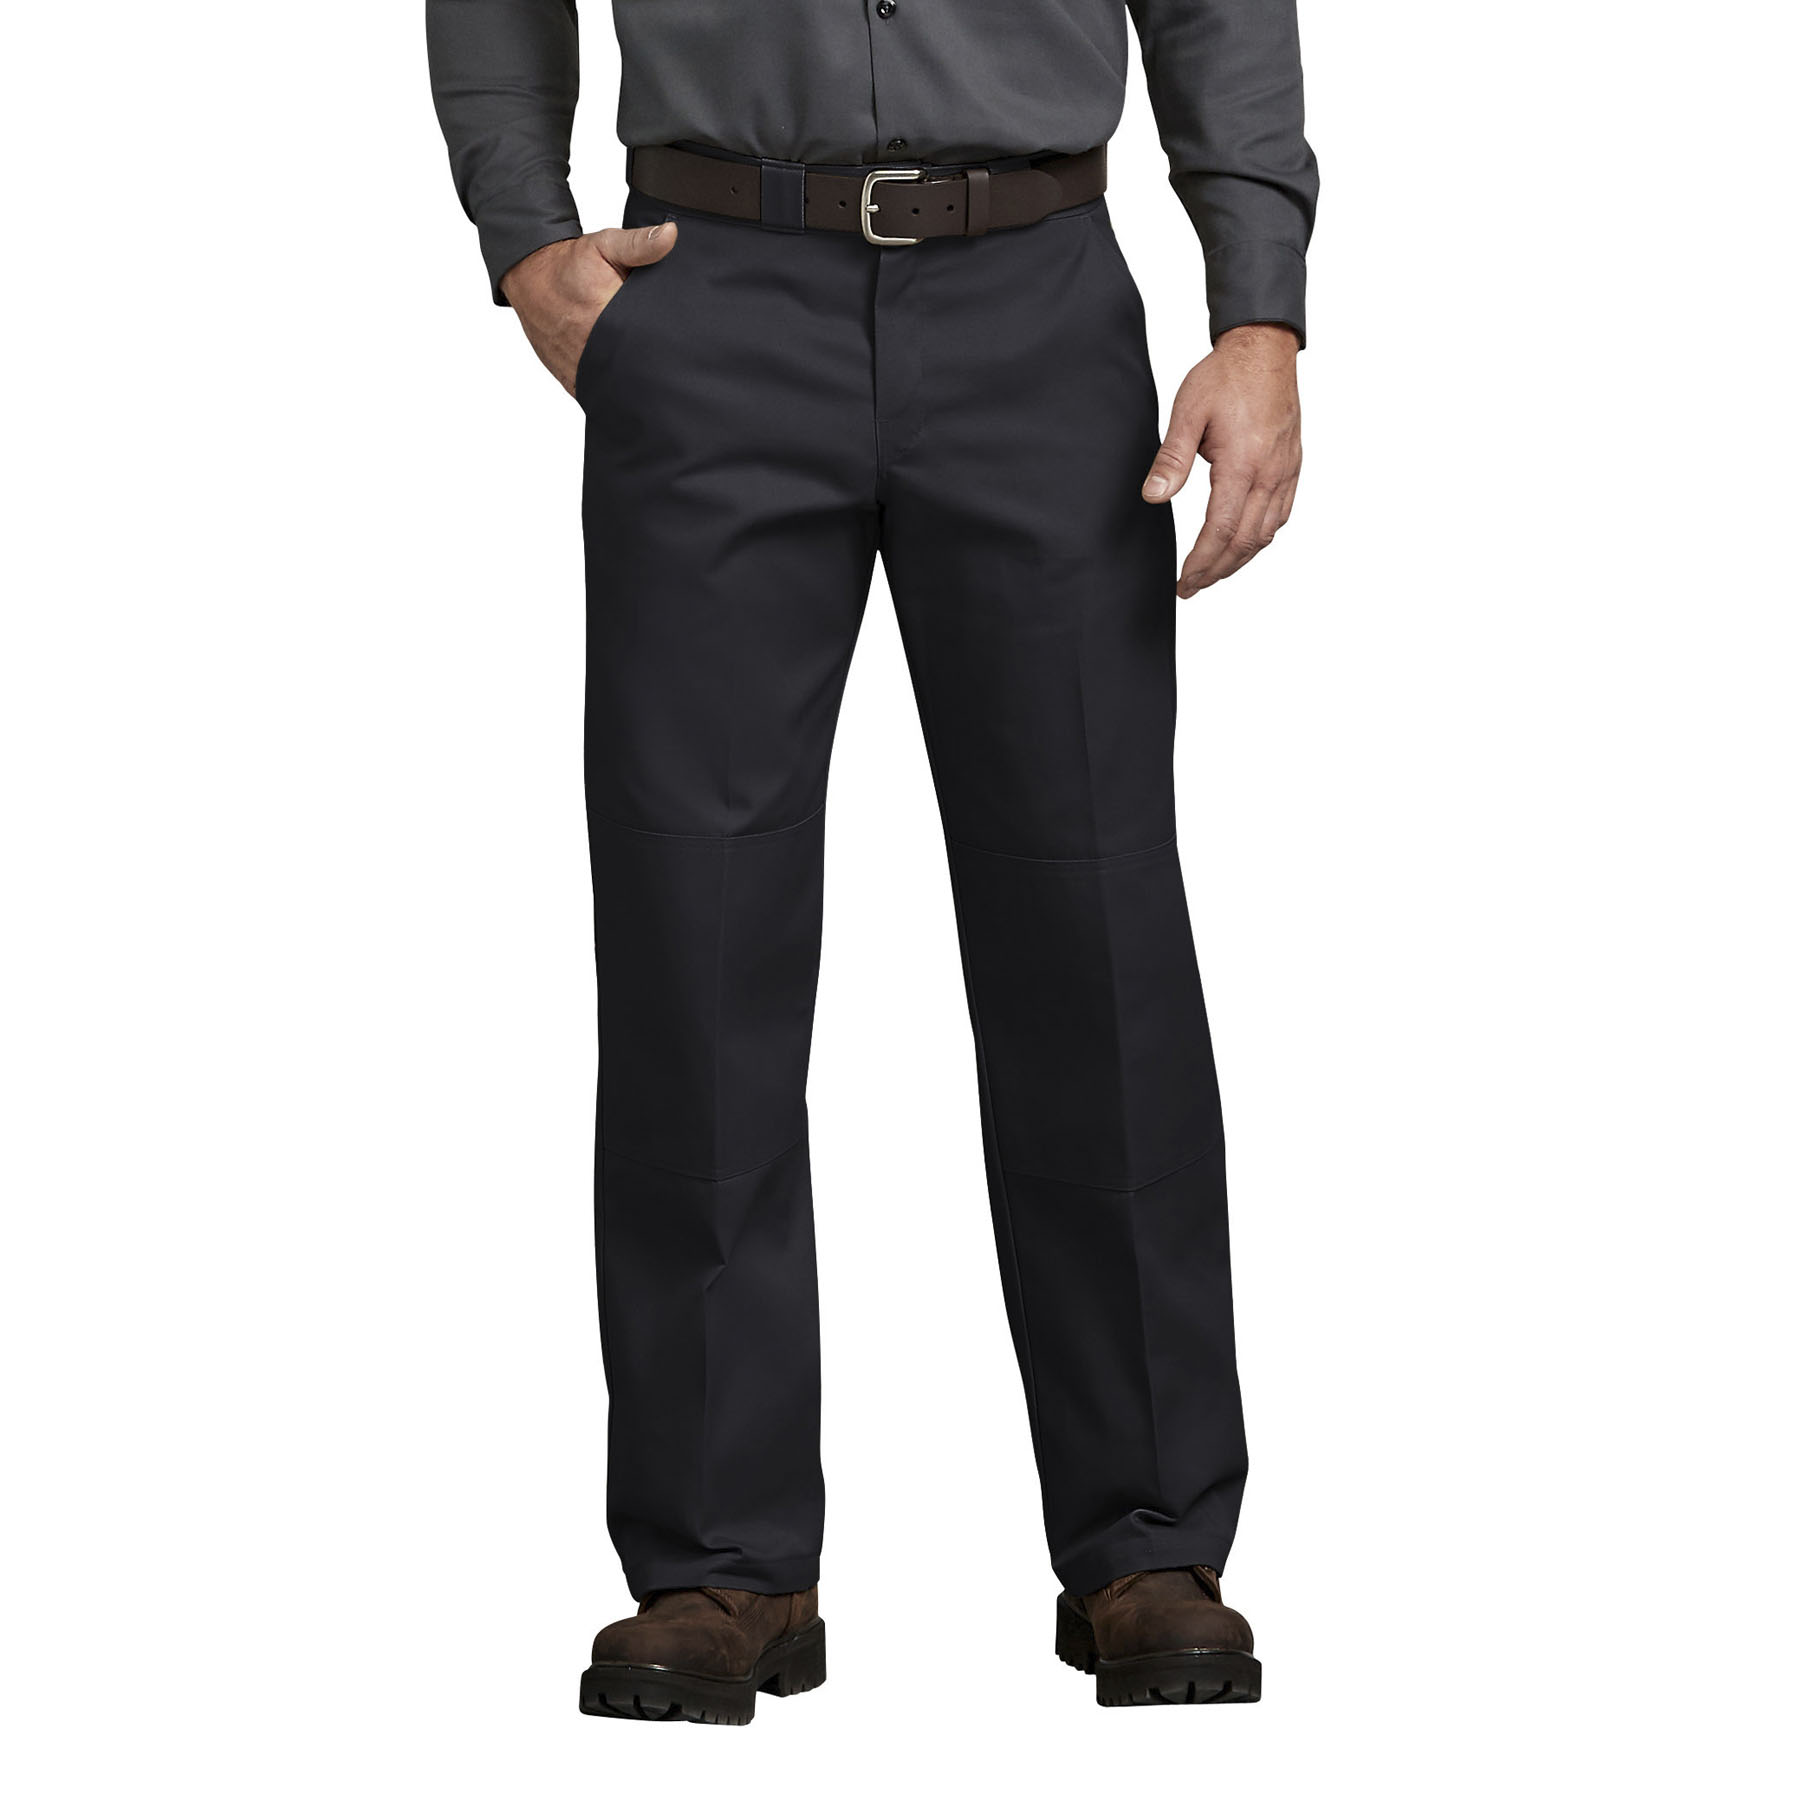 Dickies Relaxed Fit Straight Leg Double Knee Pants